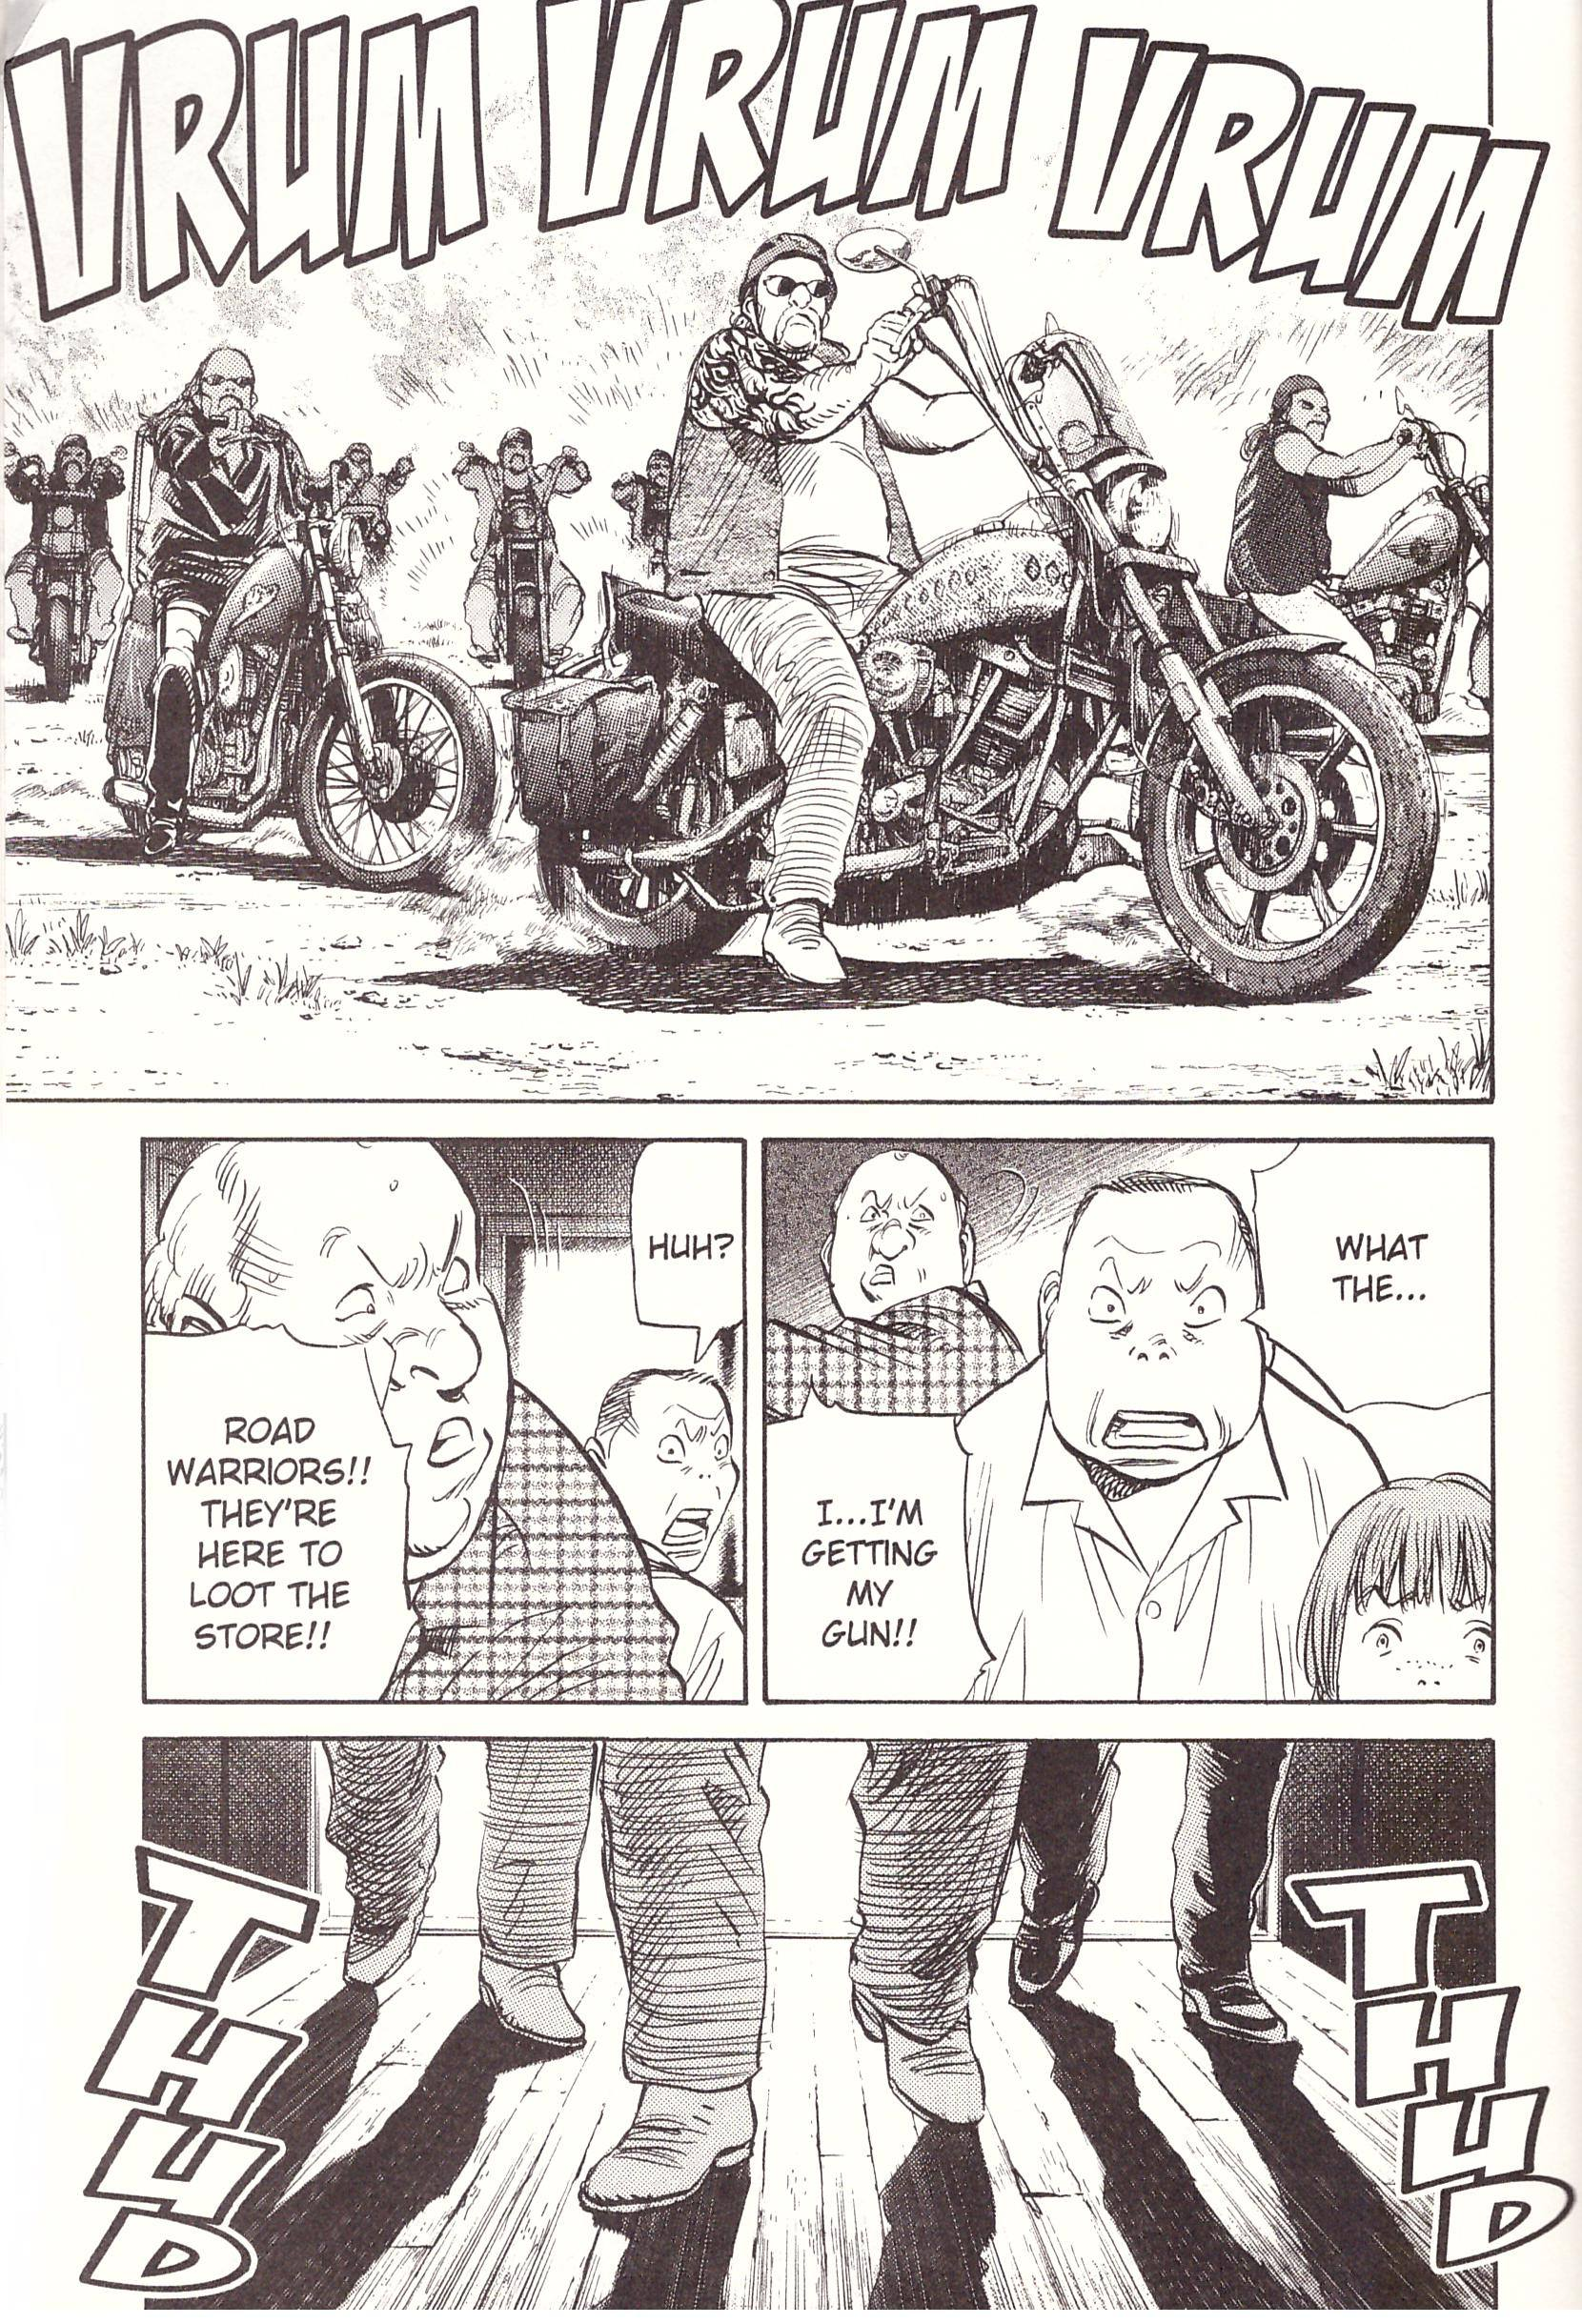 20th Century Boys 15 review